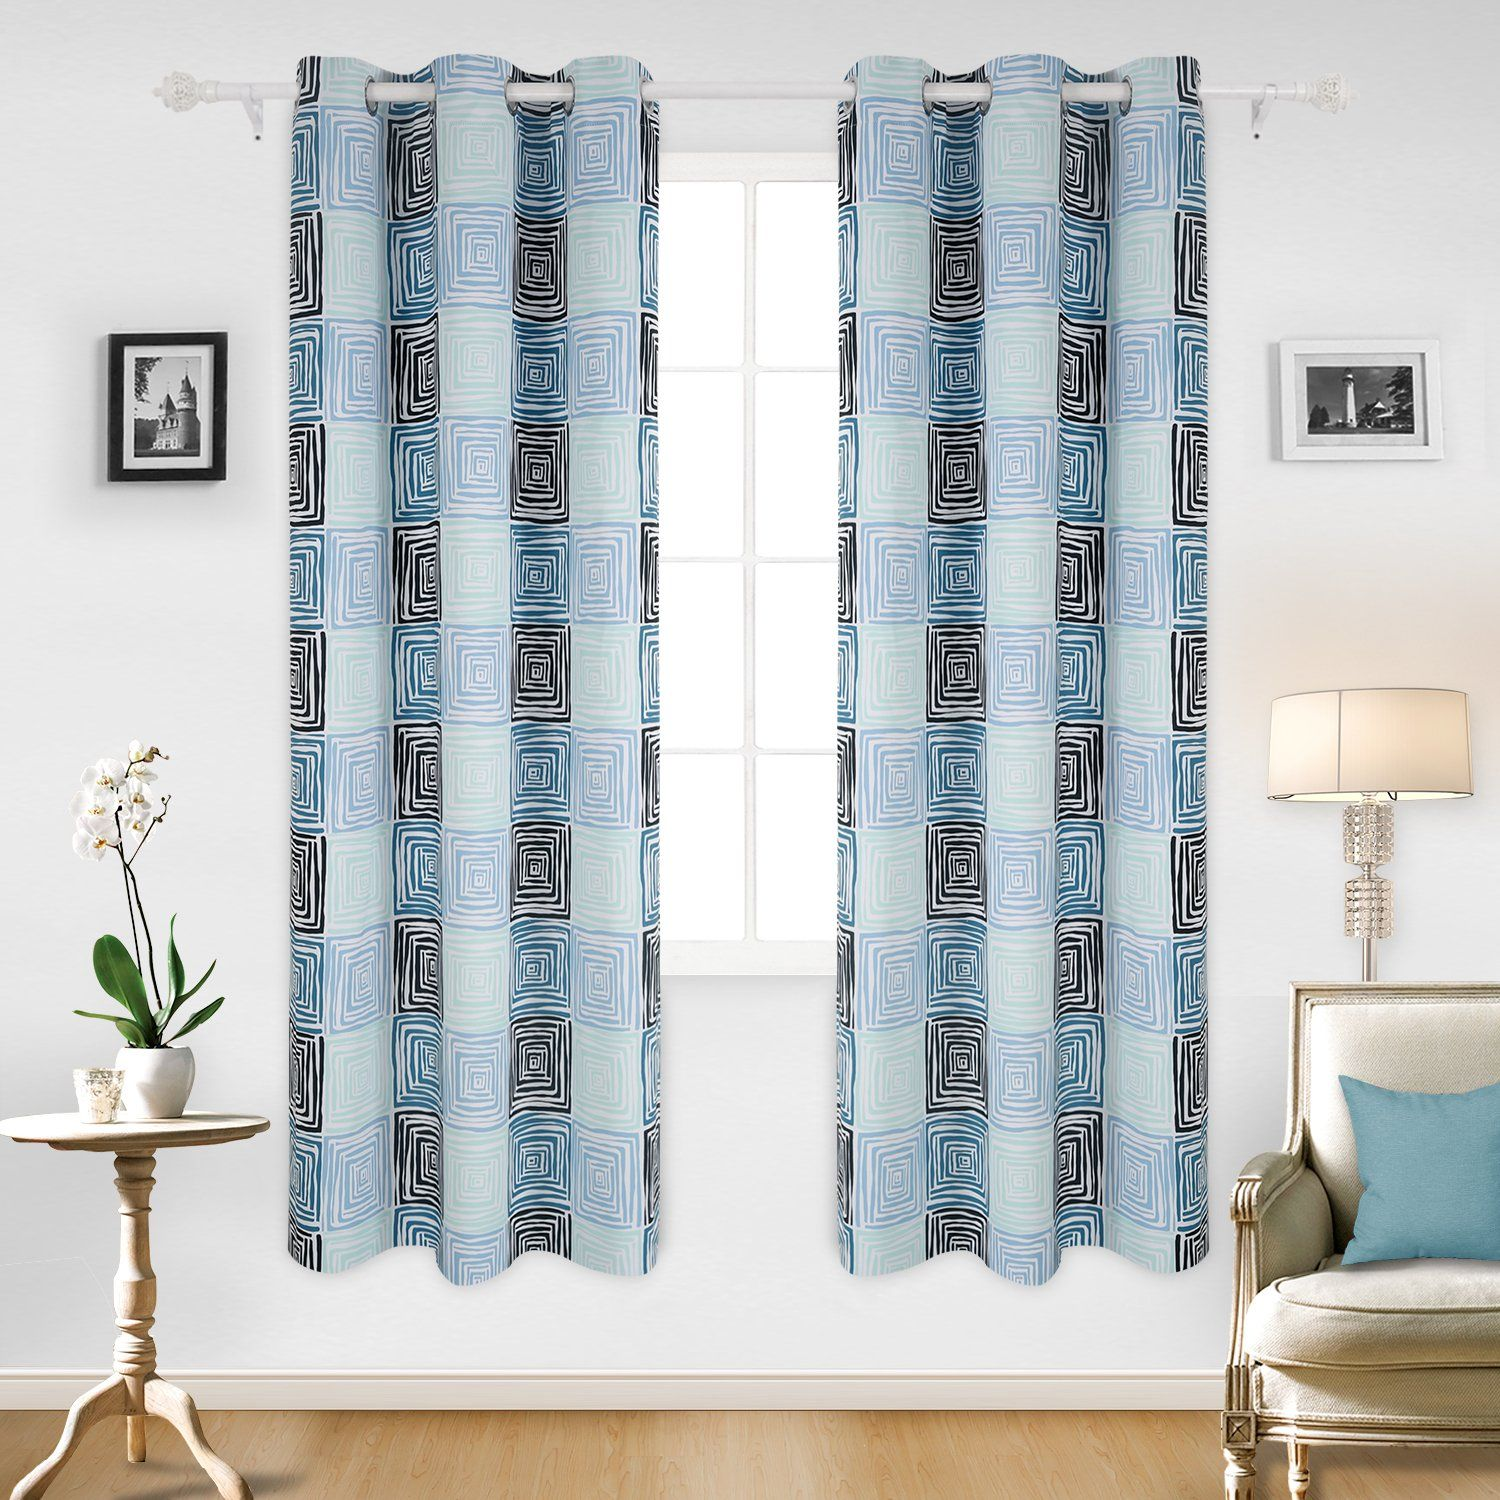 Deconovo Colorful Square Pattern Curtains Grommet Top Blackout Curtains Thermal Insulated Curtains For Office 4 Girls Room Curtains Insulated Curtains Curtains